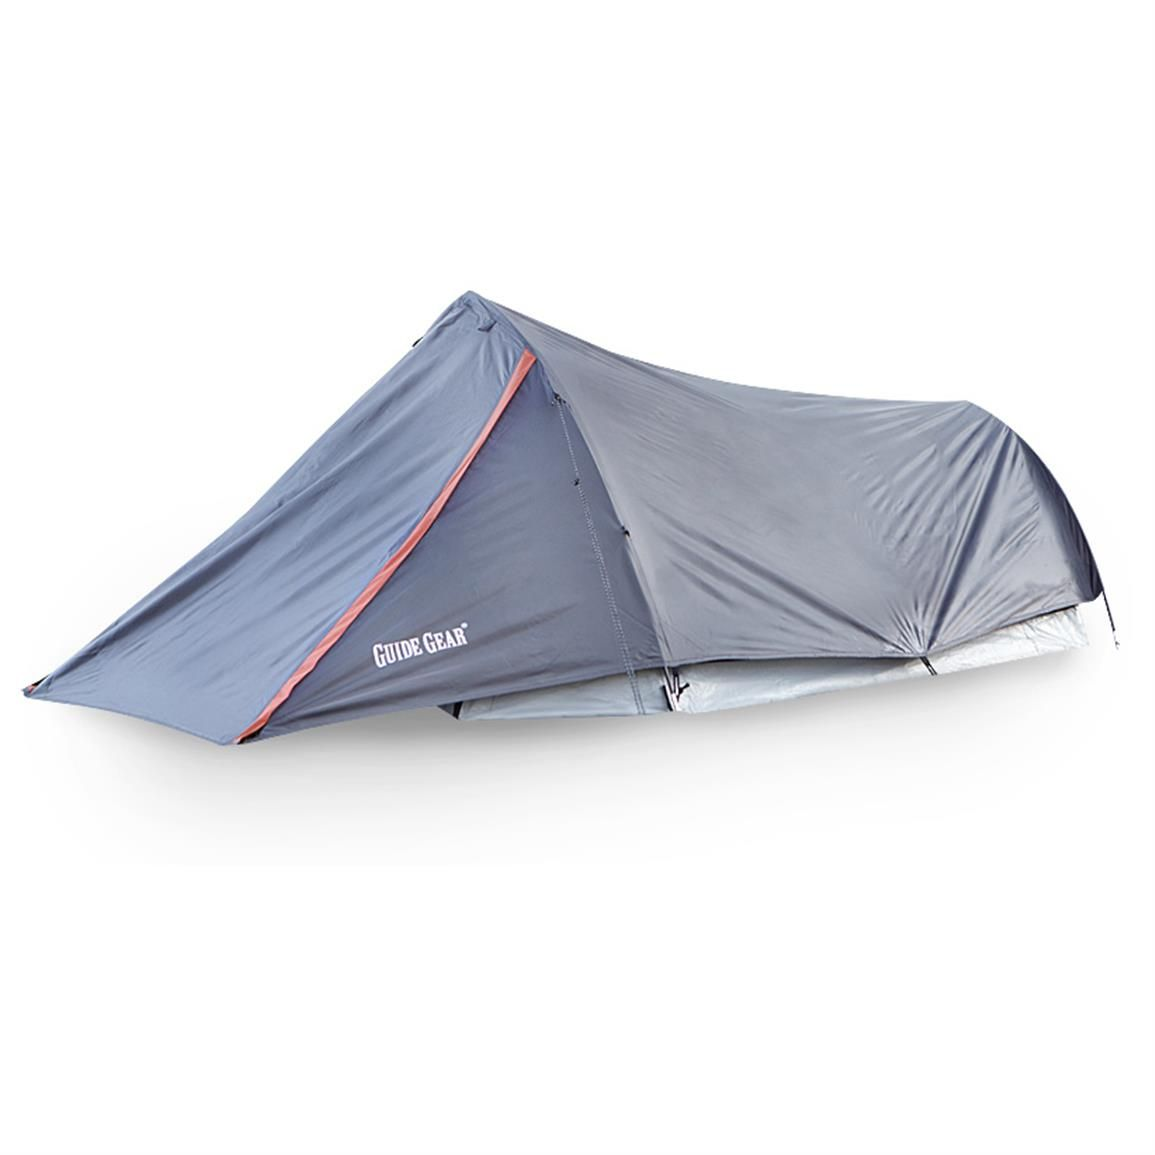 guide has your guide gear bivy tent available at a great price in our backpacking tents collection